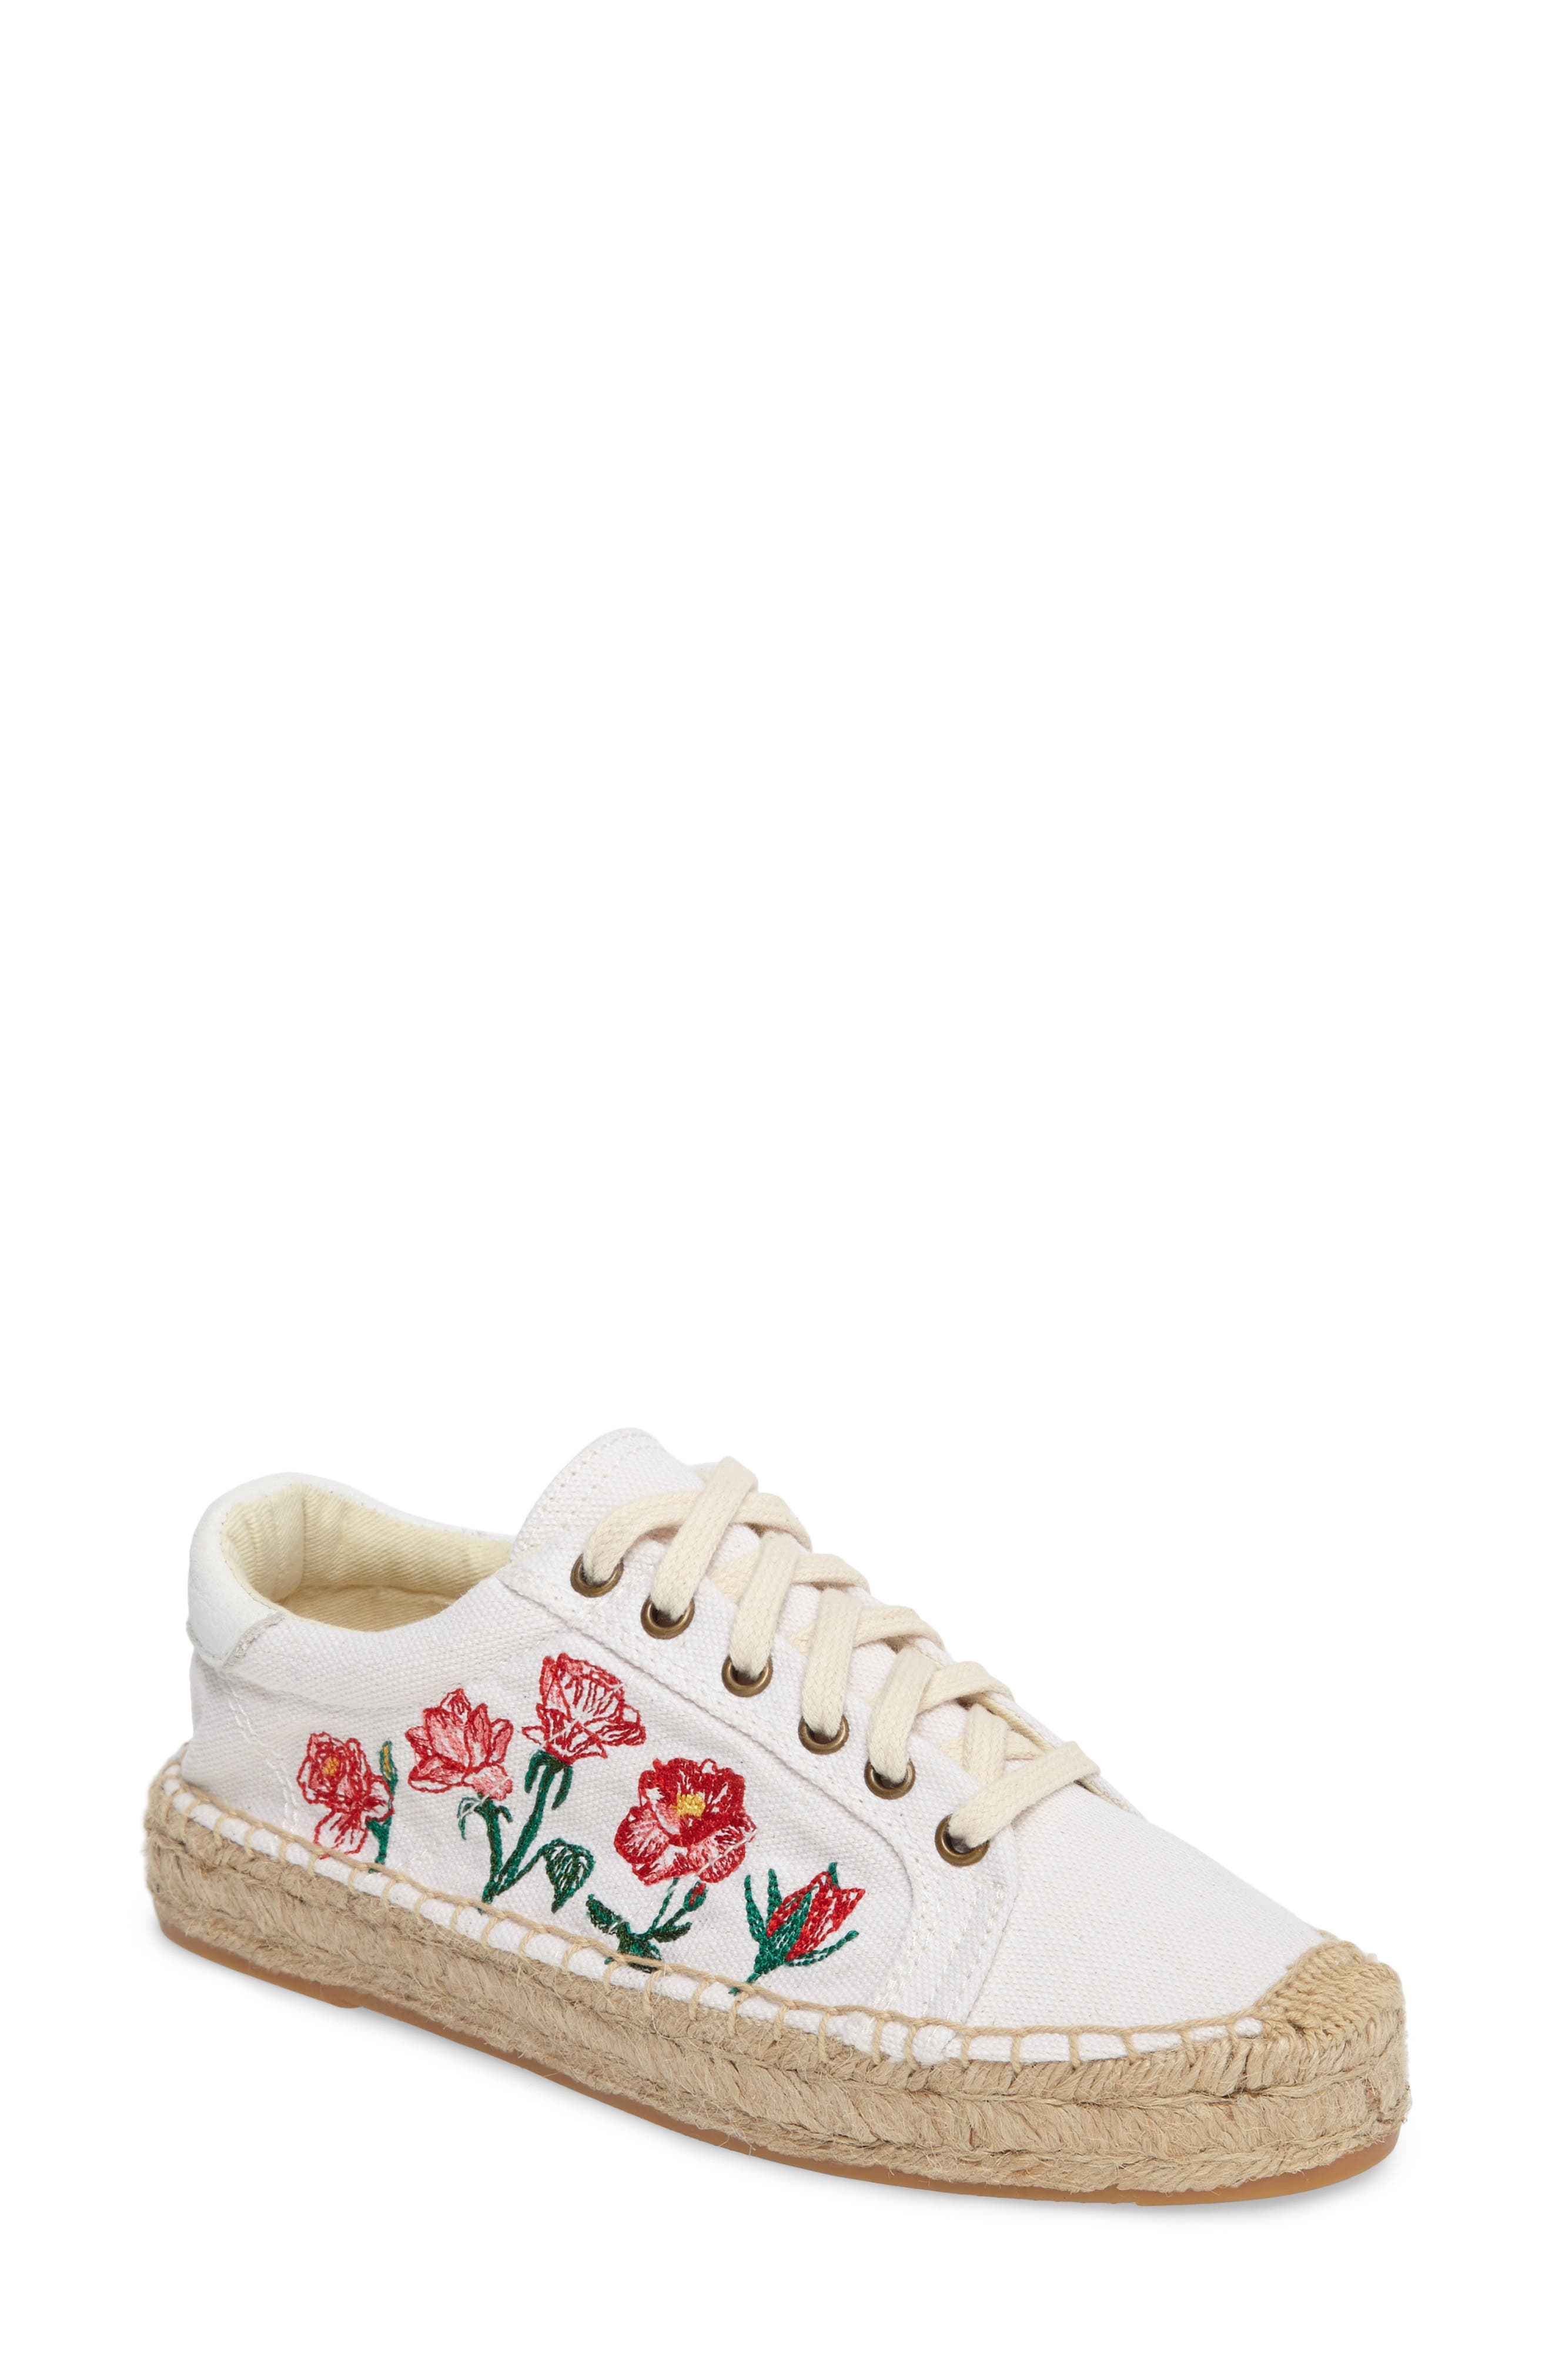 Soludos Floral Embroidered Espadrille Sneaker (Women)